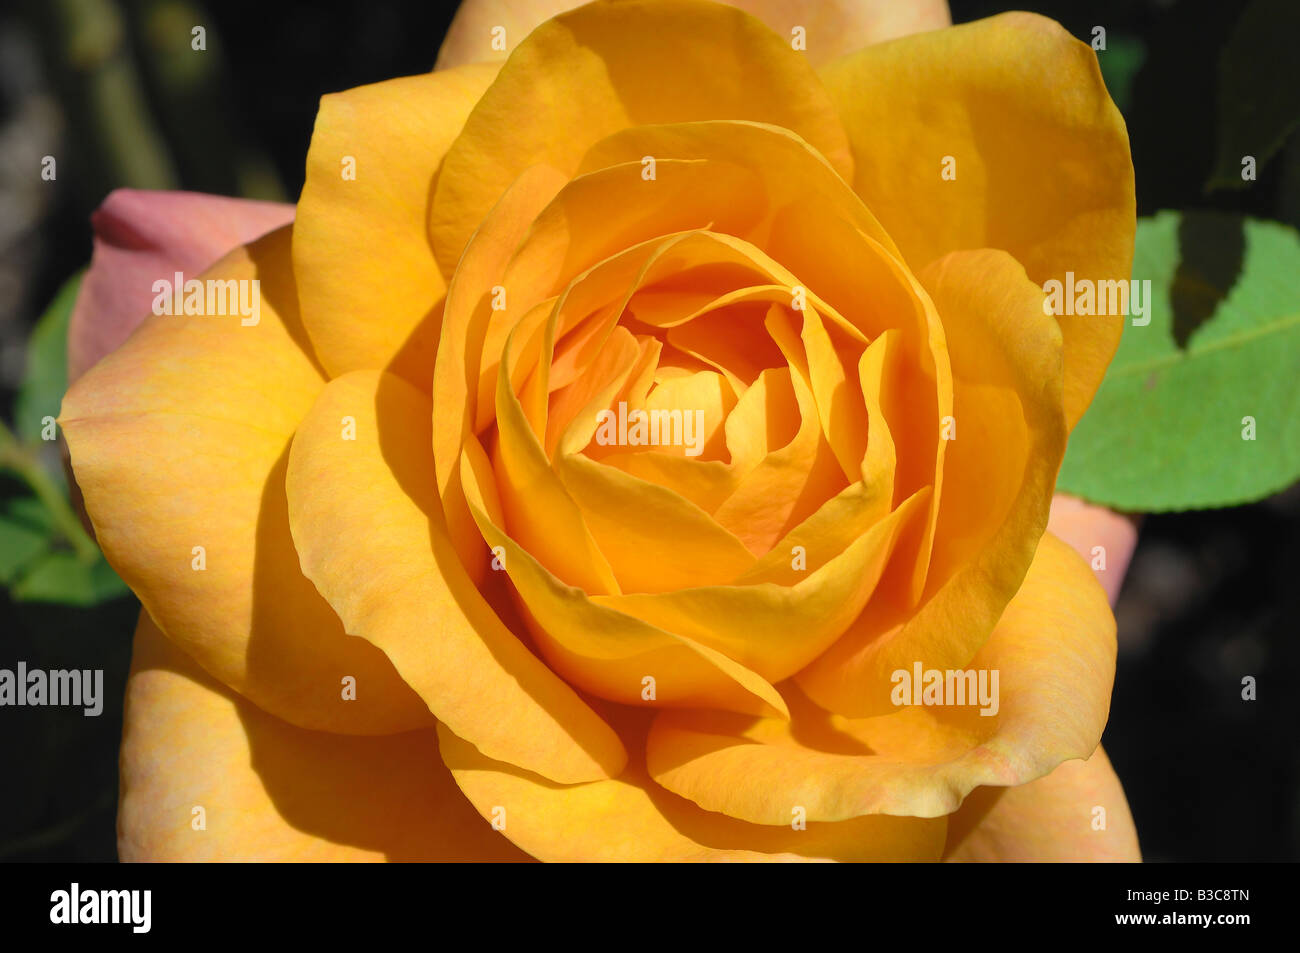 Yellow rose at Julia Davis Park, The Rose Garden, Boise, Idaho - Stock Image